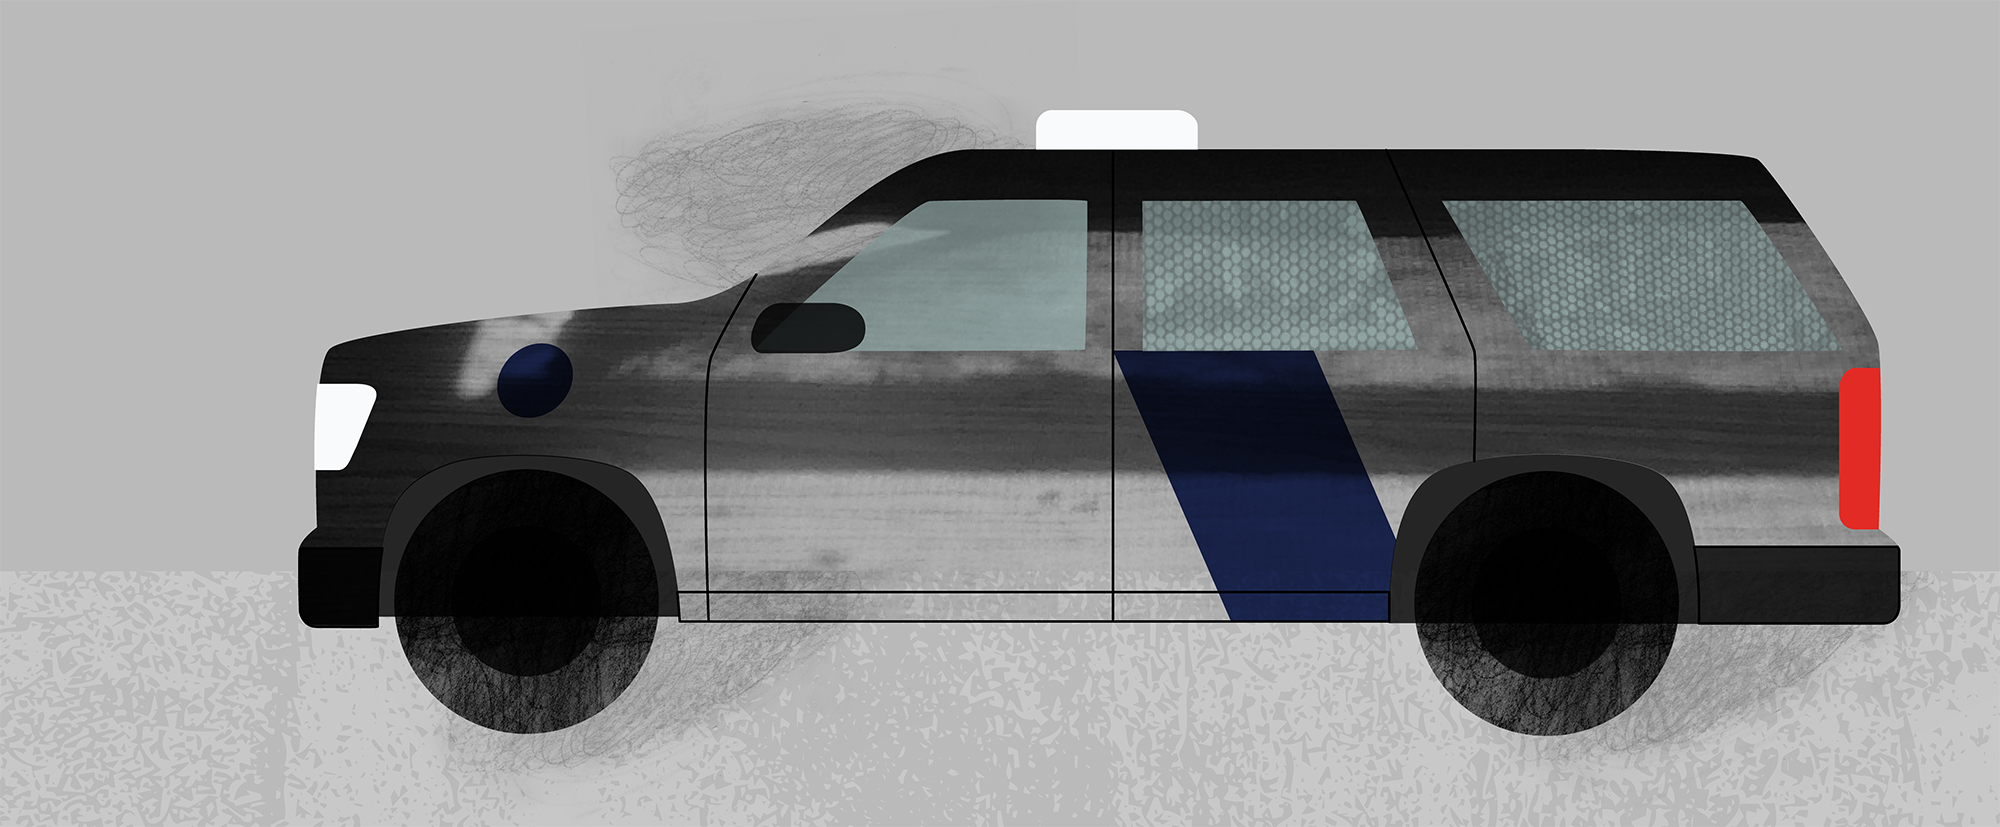 ICECar_Side_FINAL_02_2000.png